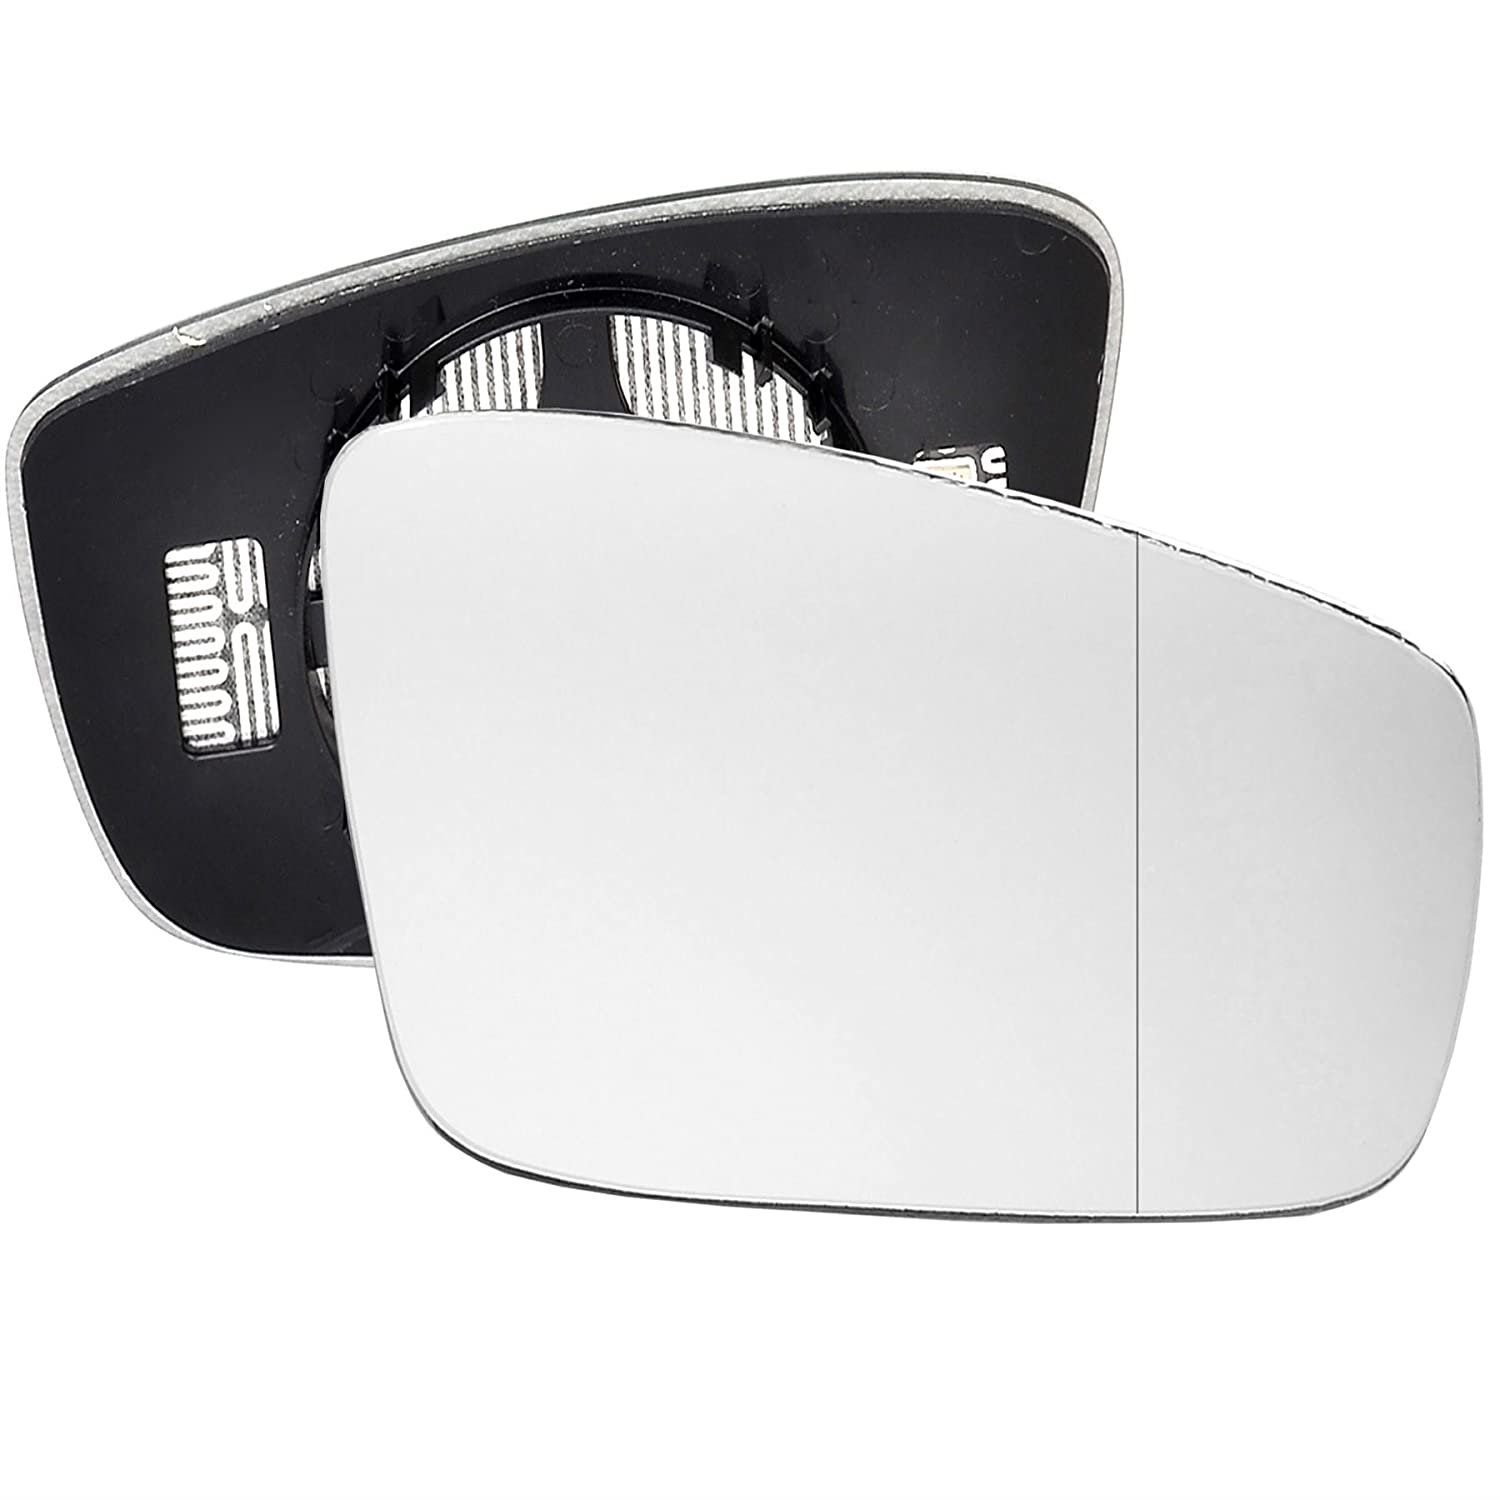 For Seat Mii 2011-2016 Driver right hand side wing door mirror wide angle glass heated with backing plate